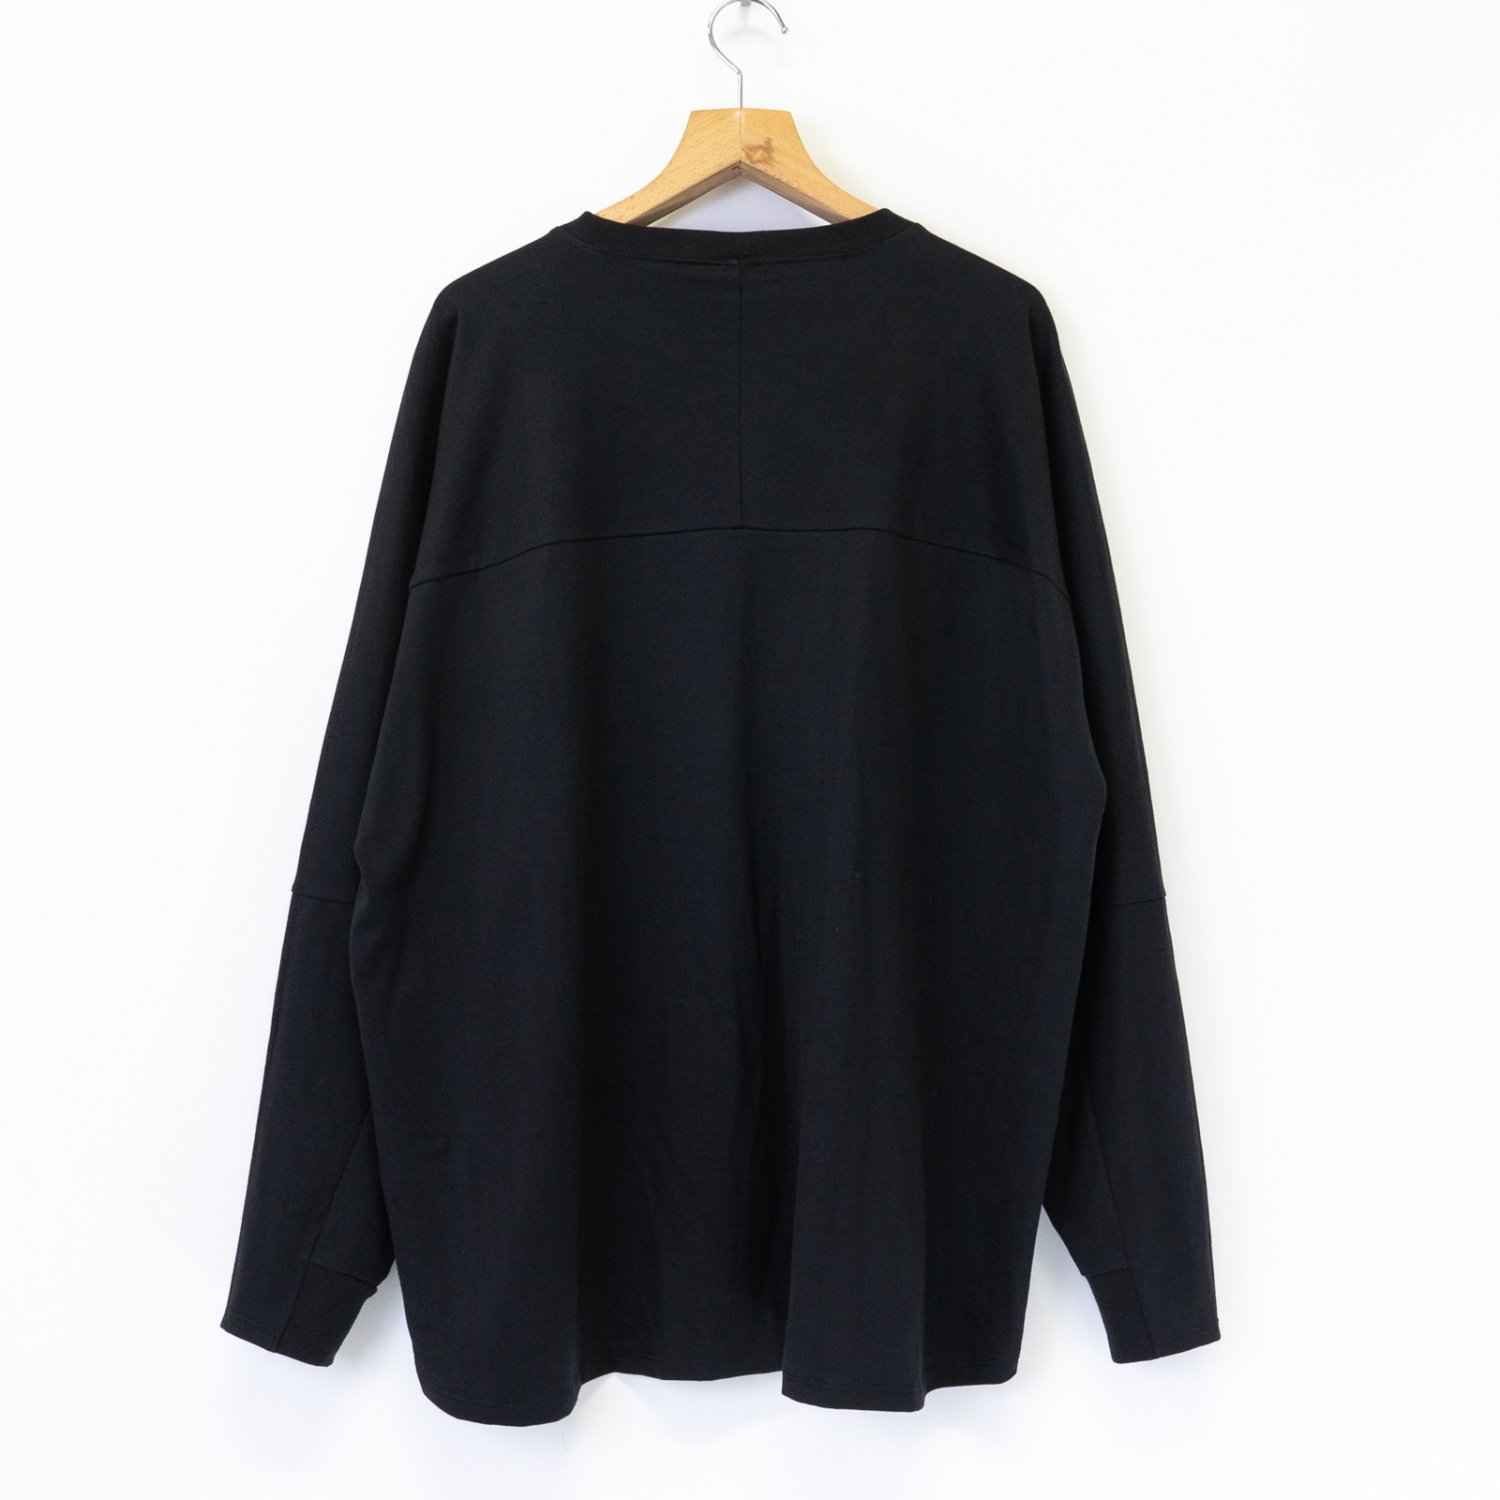 Graphpaper * PRE_ for Graphpaper Oversized FTB L/S Tee * Black